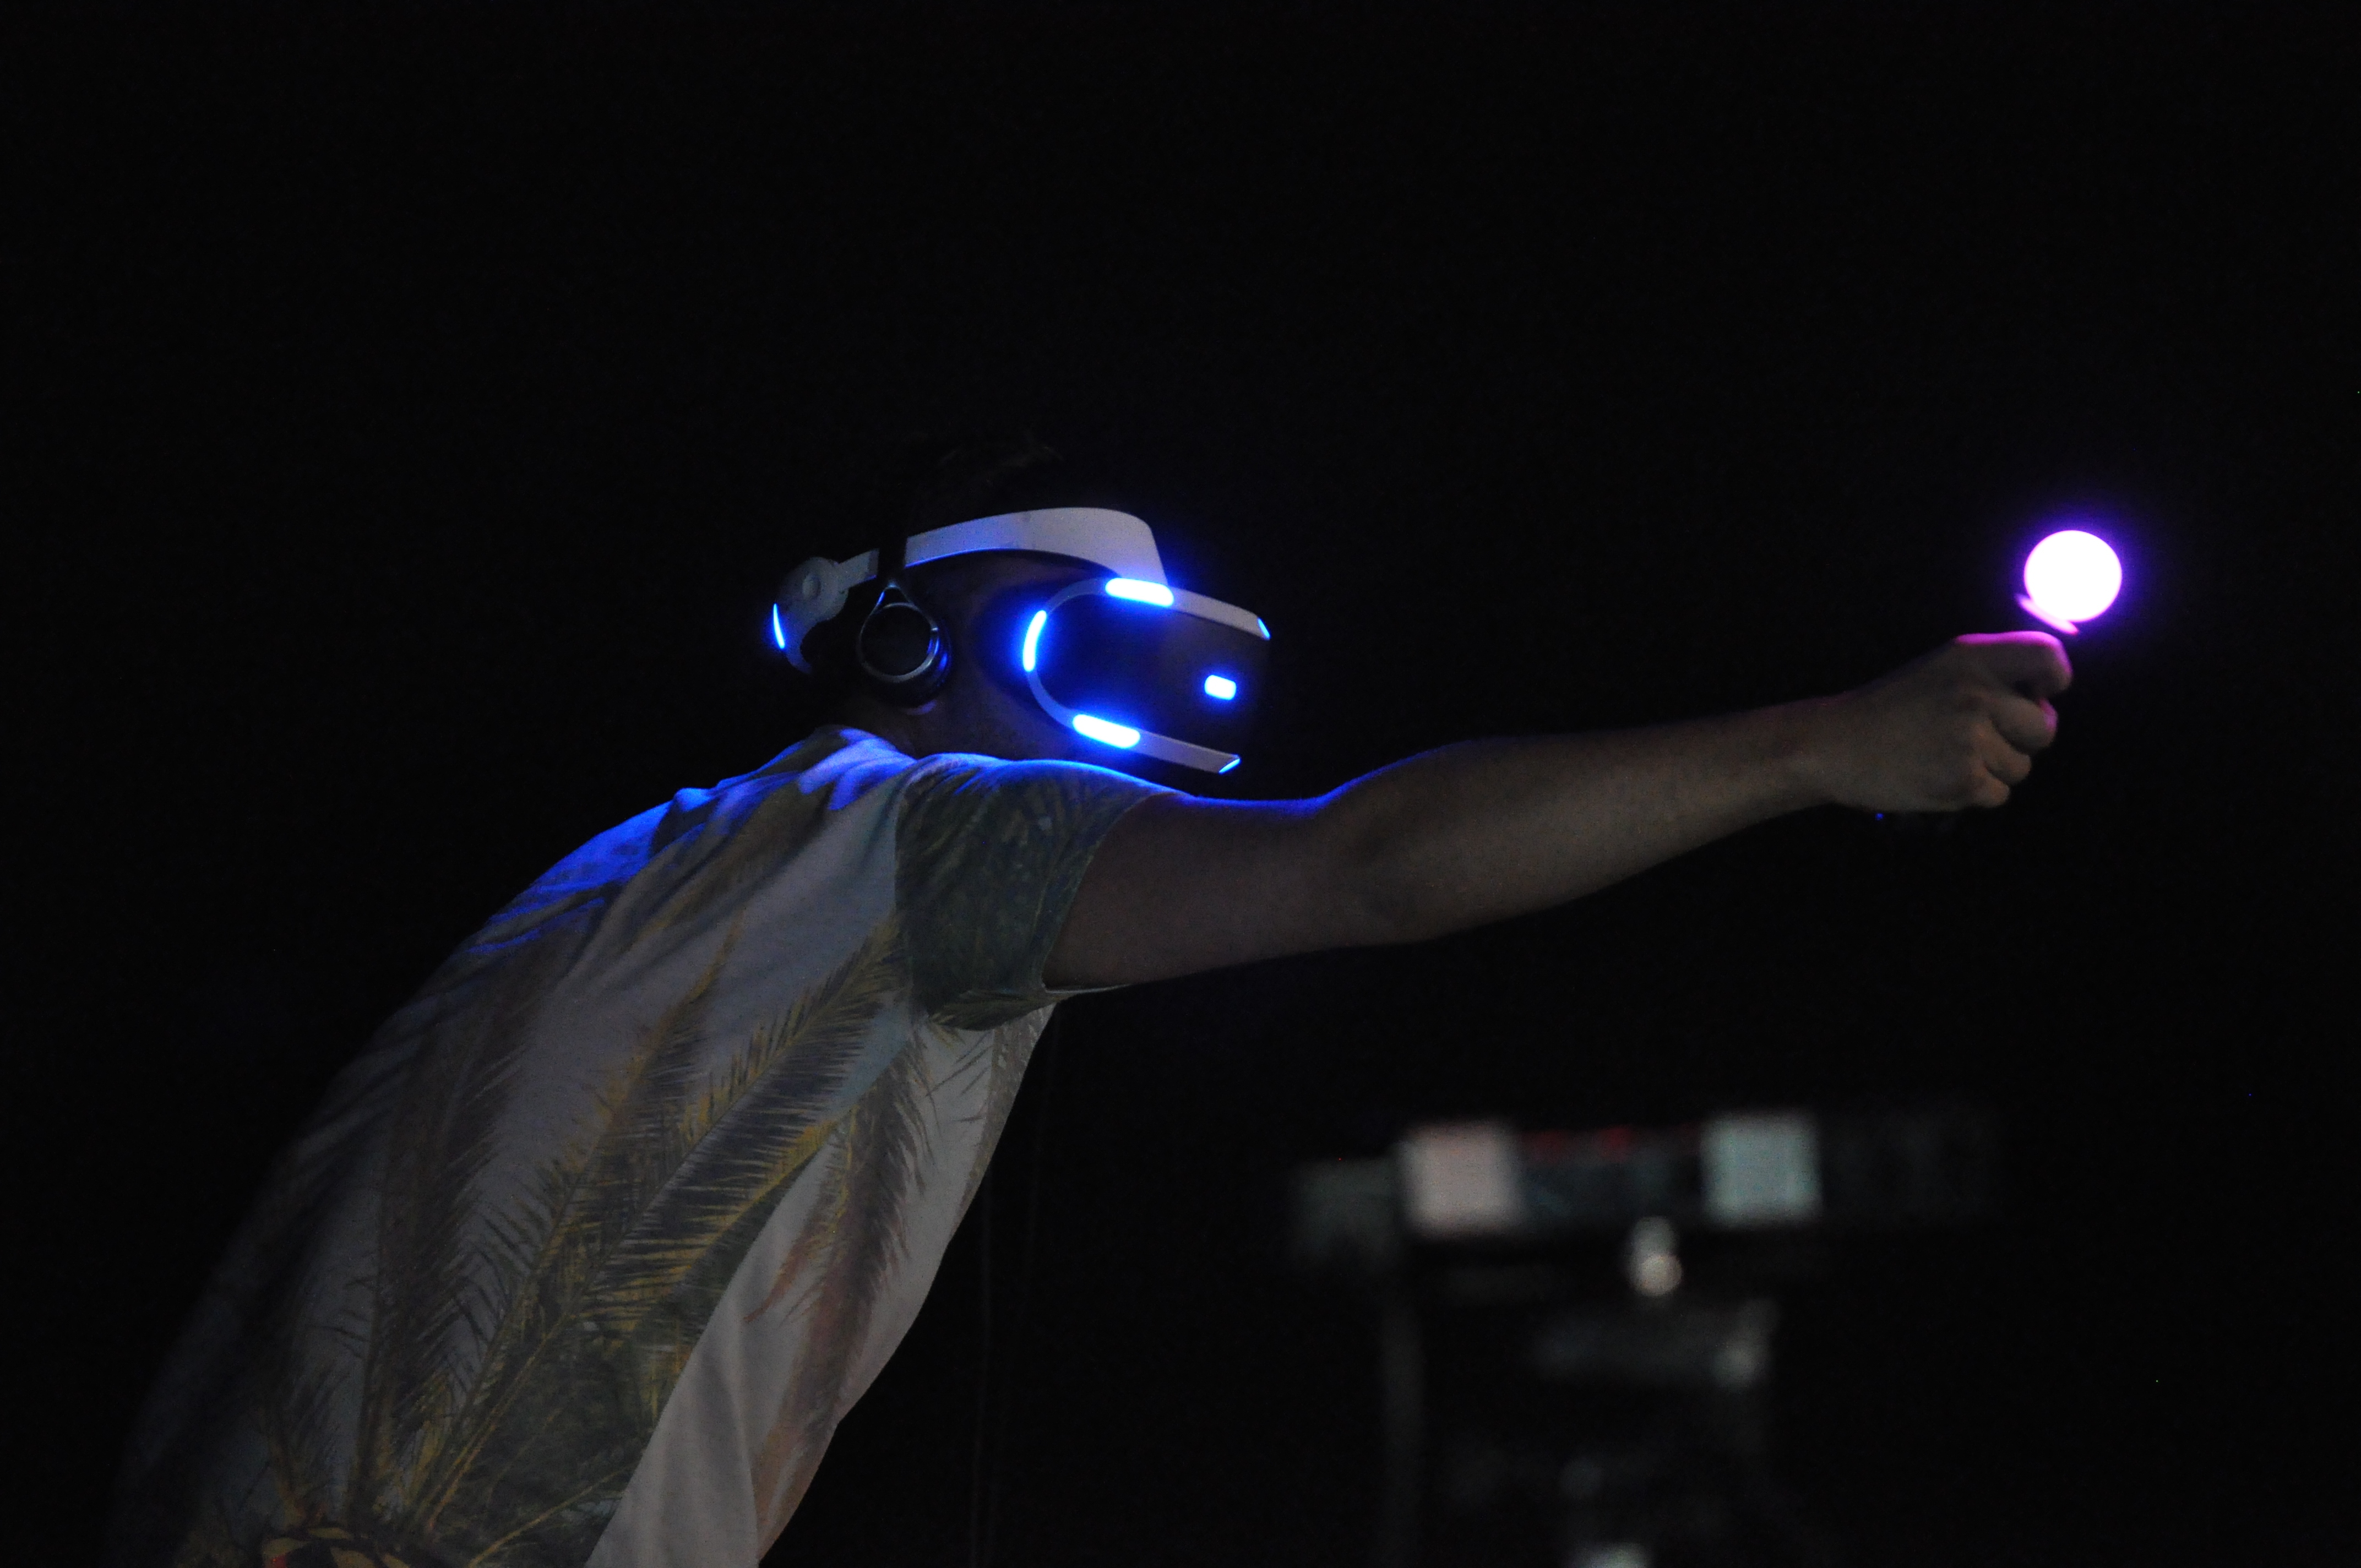 'PS4 VR' Is Both A Success And Potential Sign Of Future Failure For Sony - EconoTimes